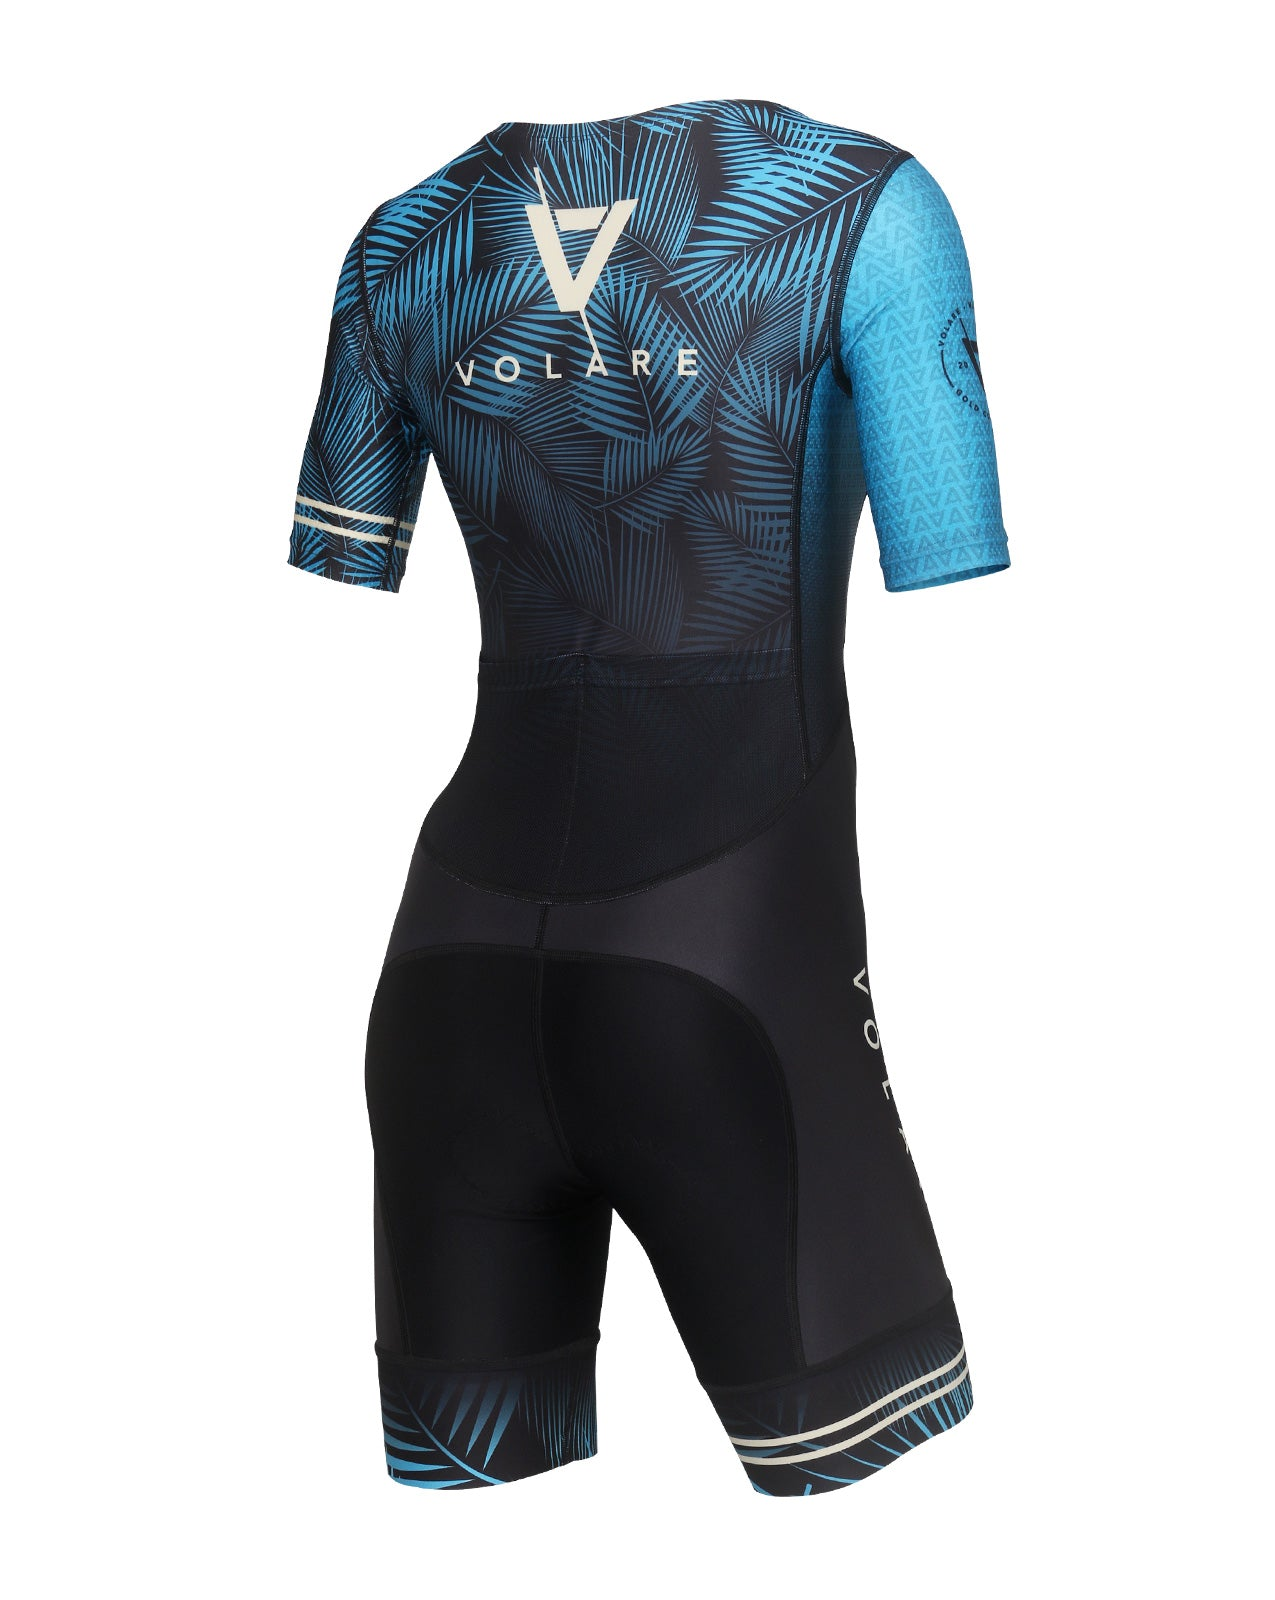 Volare Womens Palms Dark Sleeved Tri Suit